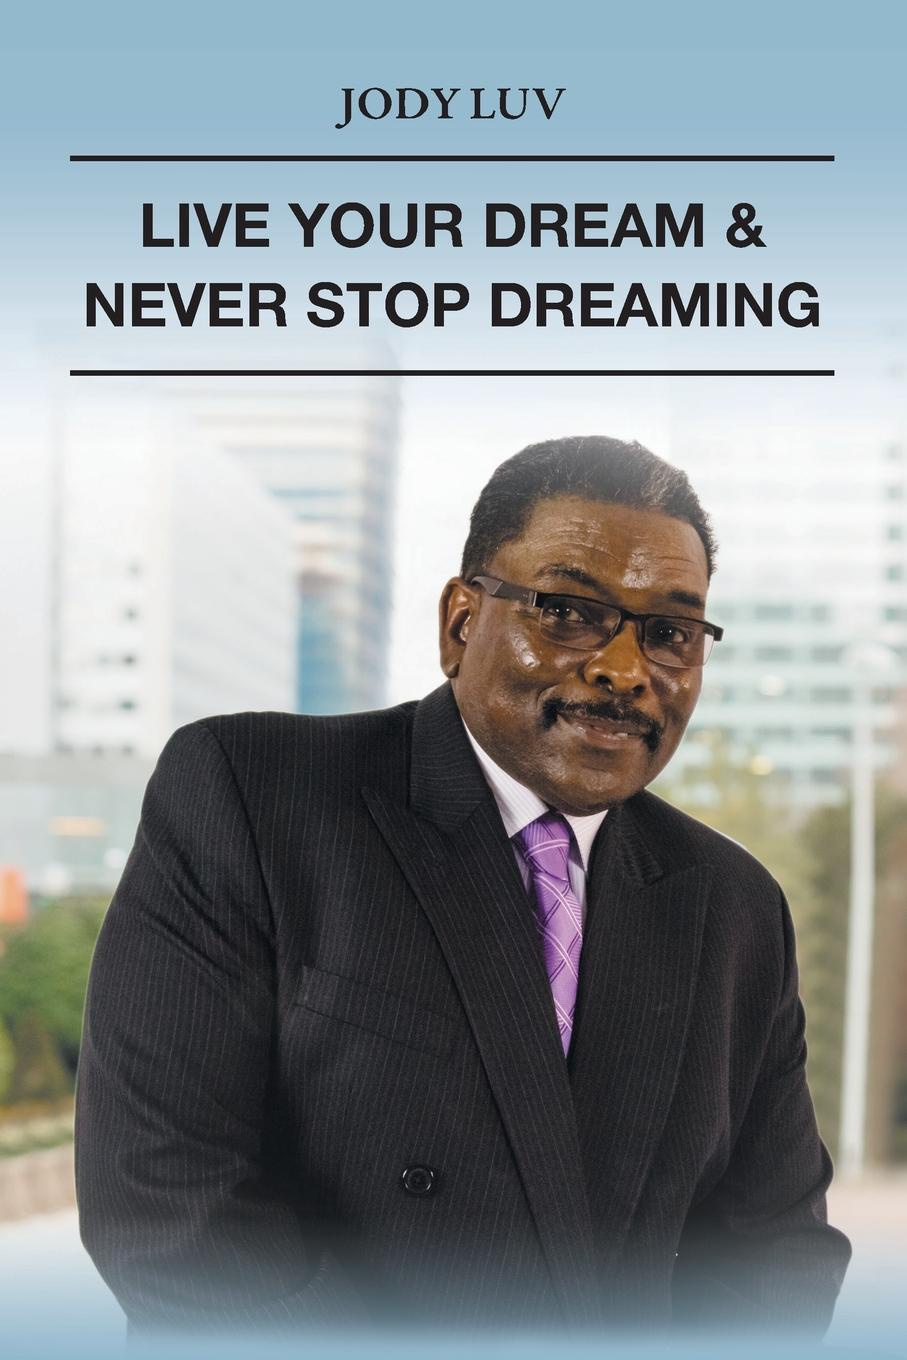 Jody Luv Live Your Dream . Never Stop Dreaming. Never Stop Dreaming never stop to think do i have a place for this